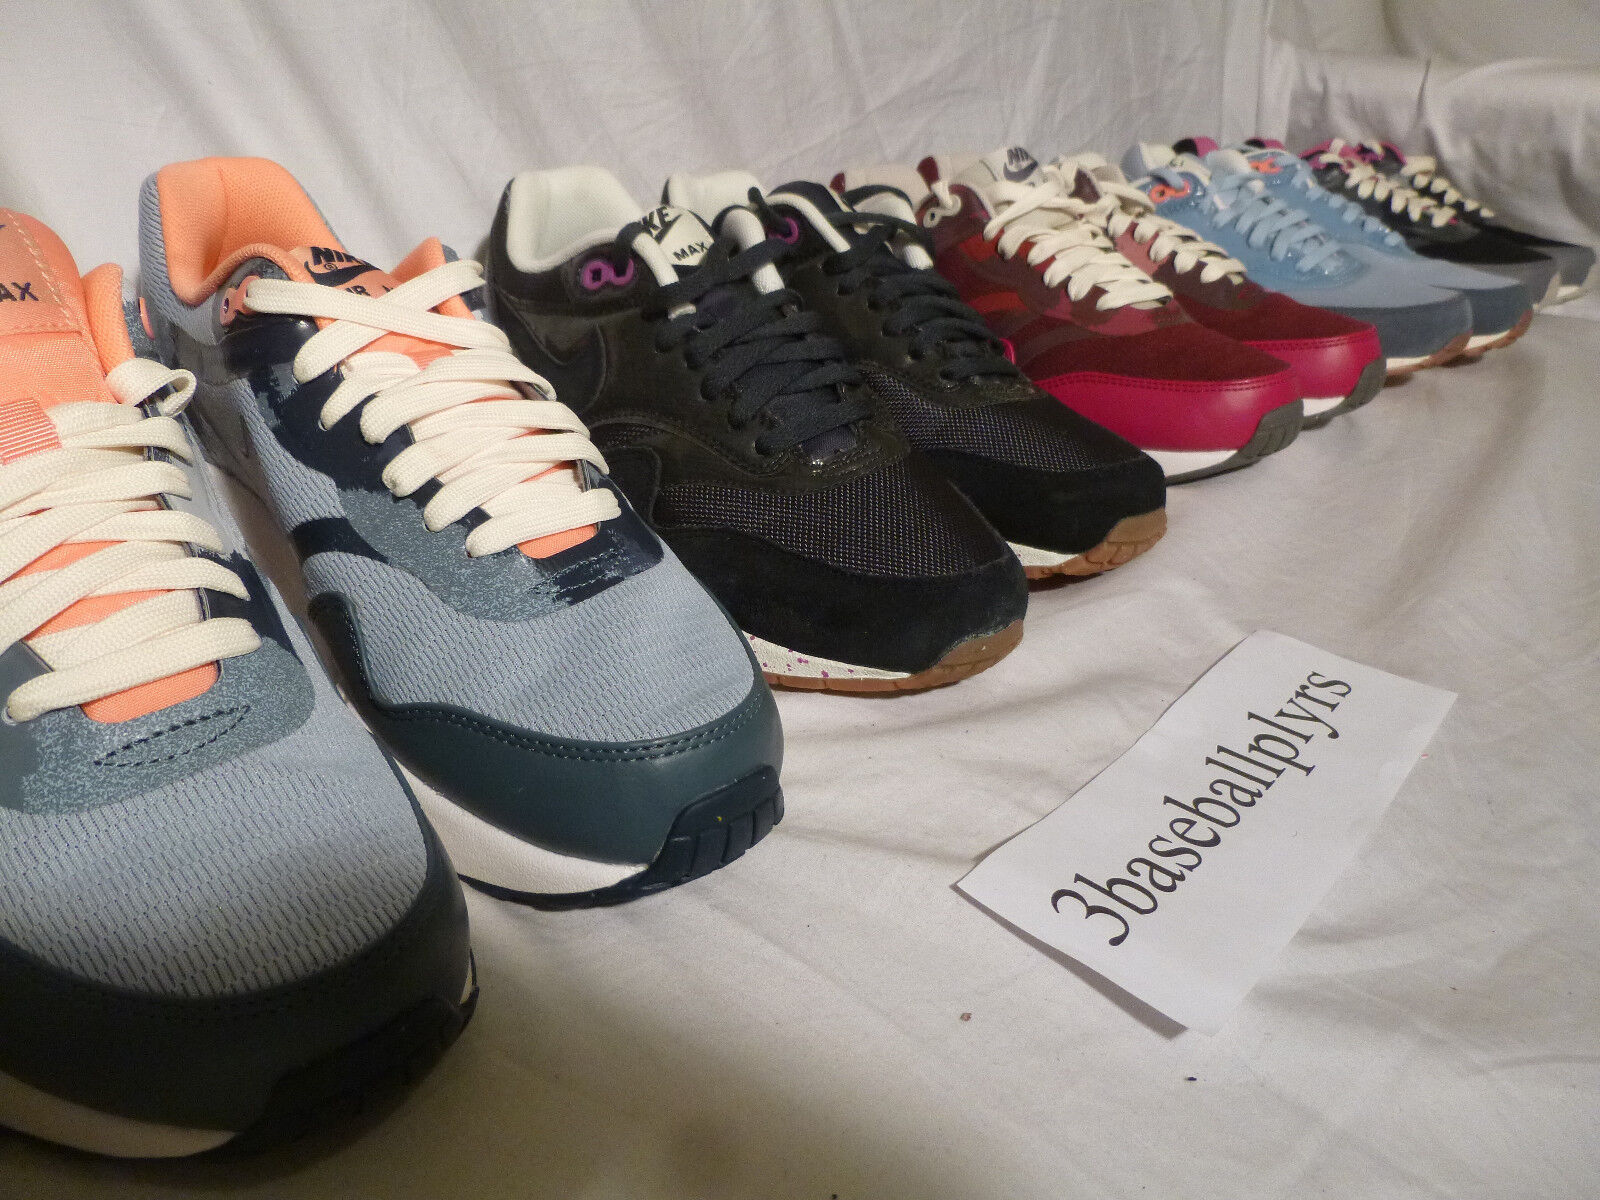 5 Pair LOT  Nike Womens Air Max 1 Size 7 RARE - UNRELEASED SAMPLES - BRAND NEW